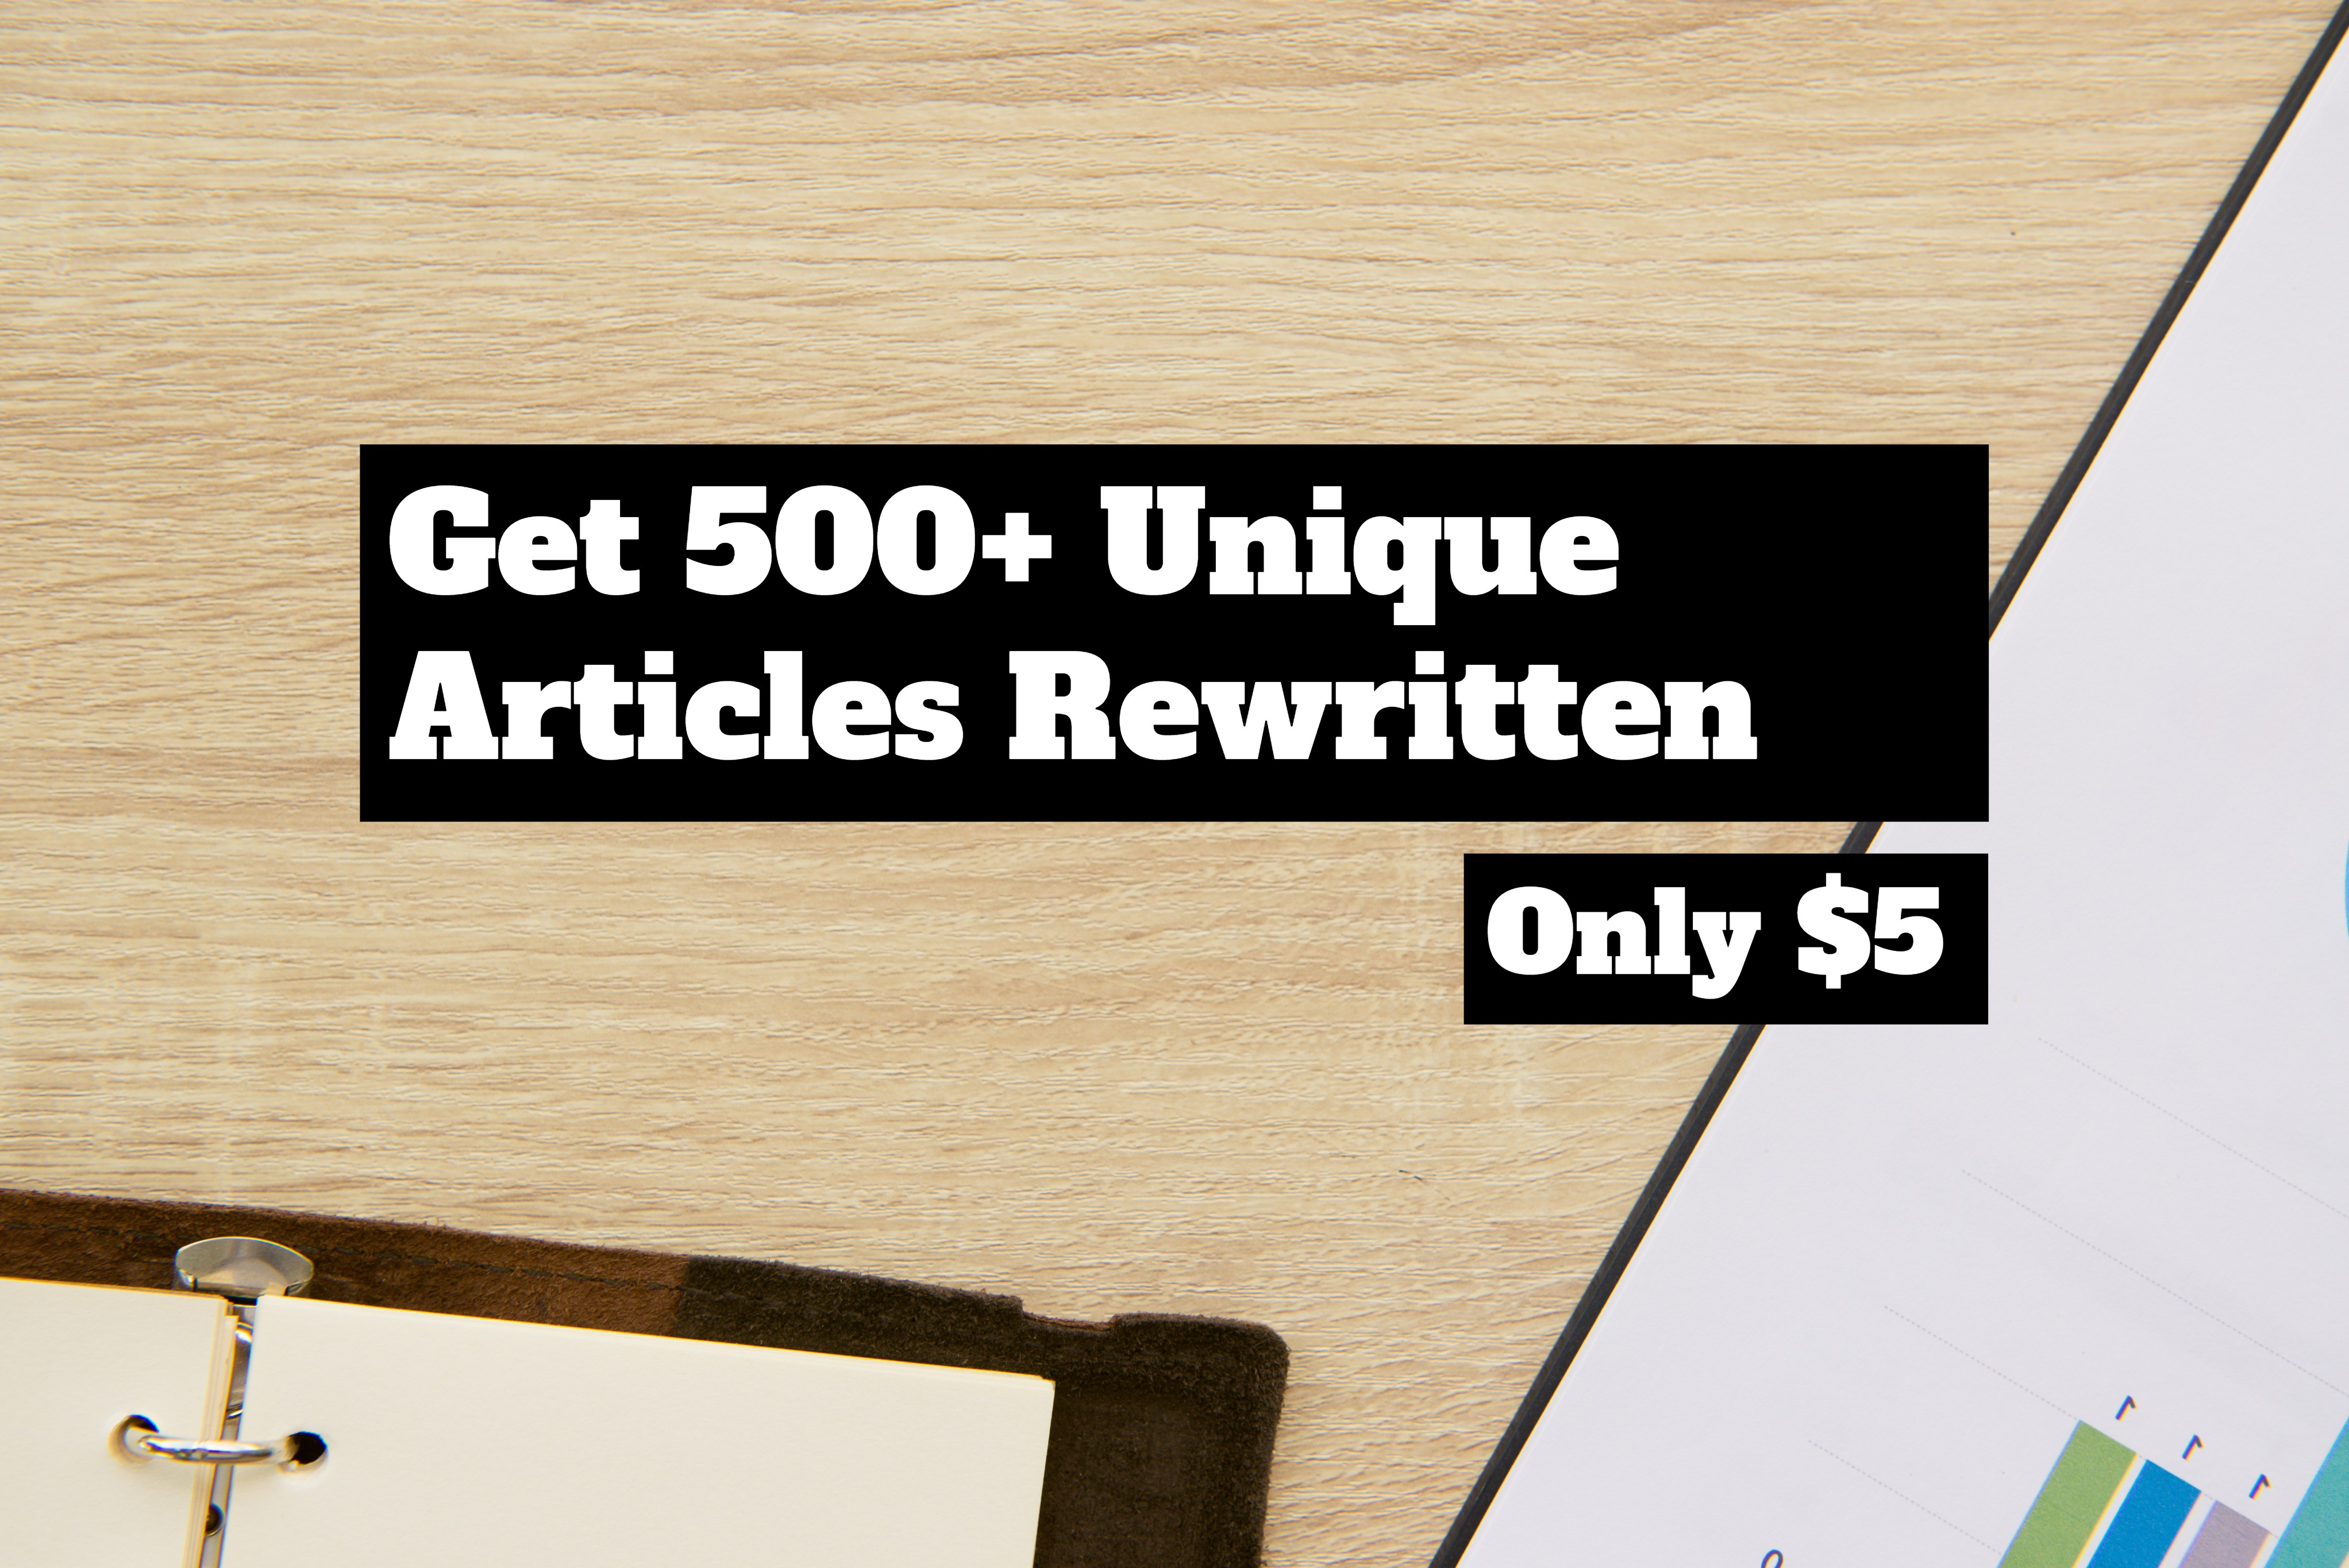 Turn Your Article Into 500+ Unique Articles